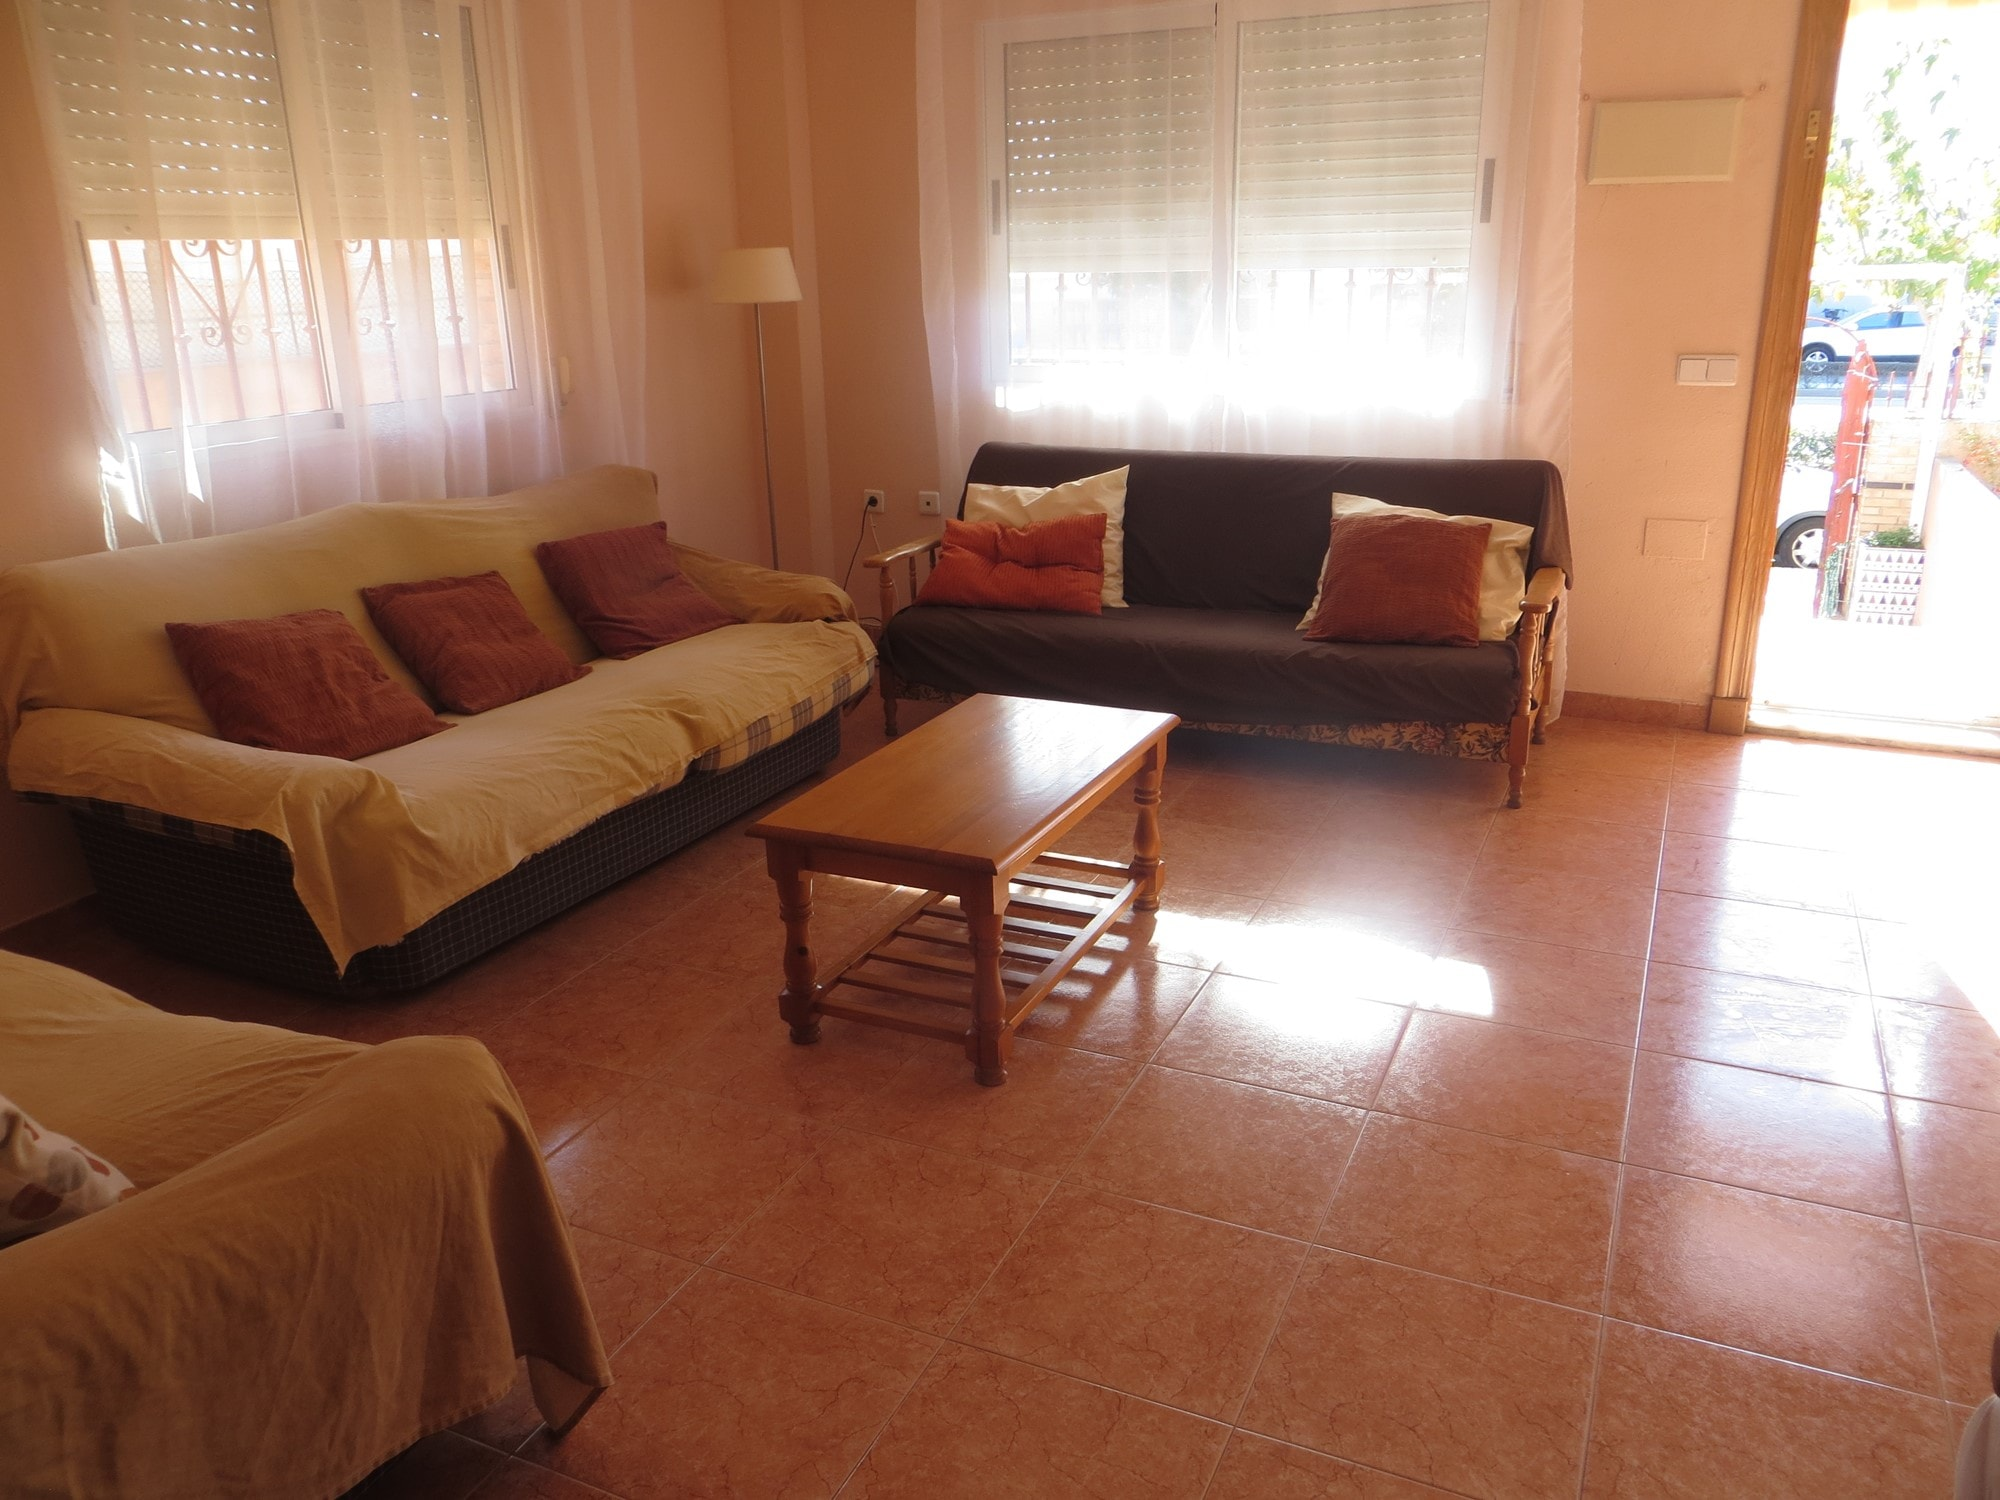 Duplex for sale in Torre de la Horadada